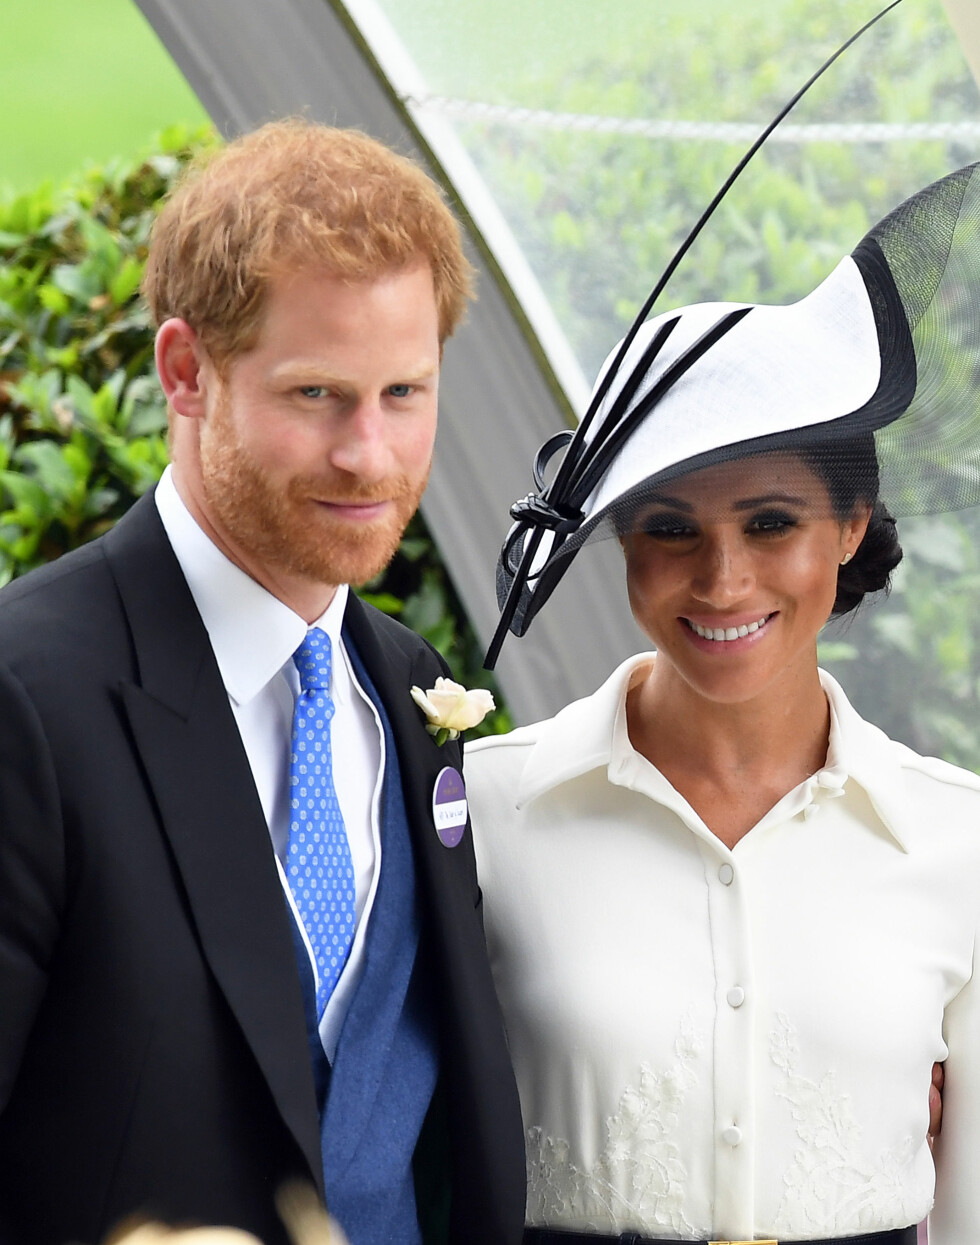 Prins Harry og hertuginne Meghan